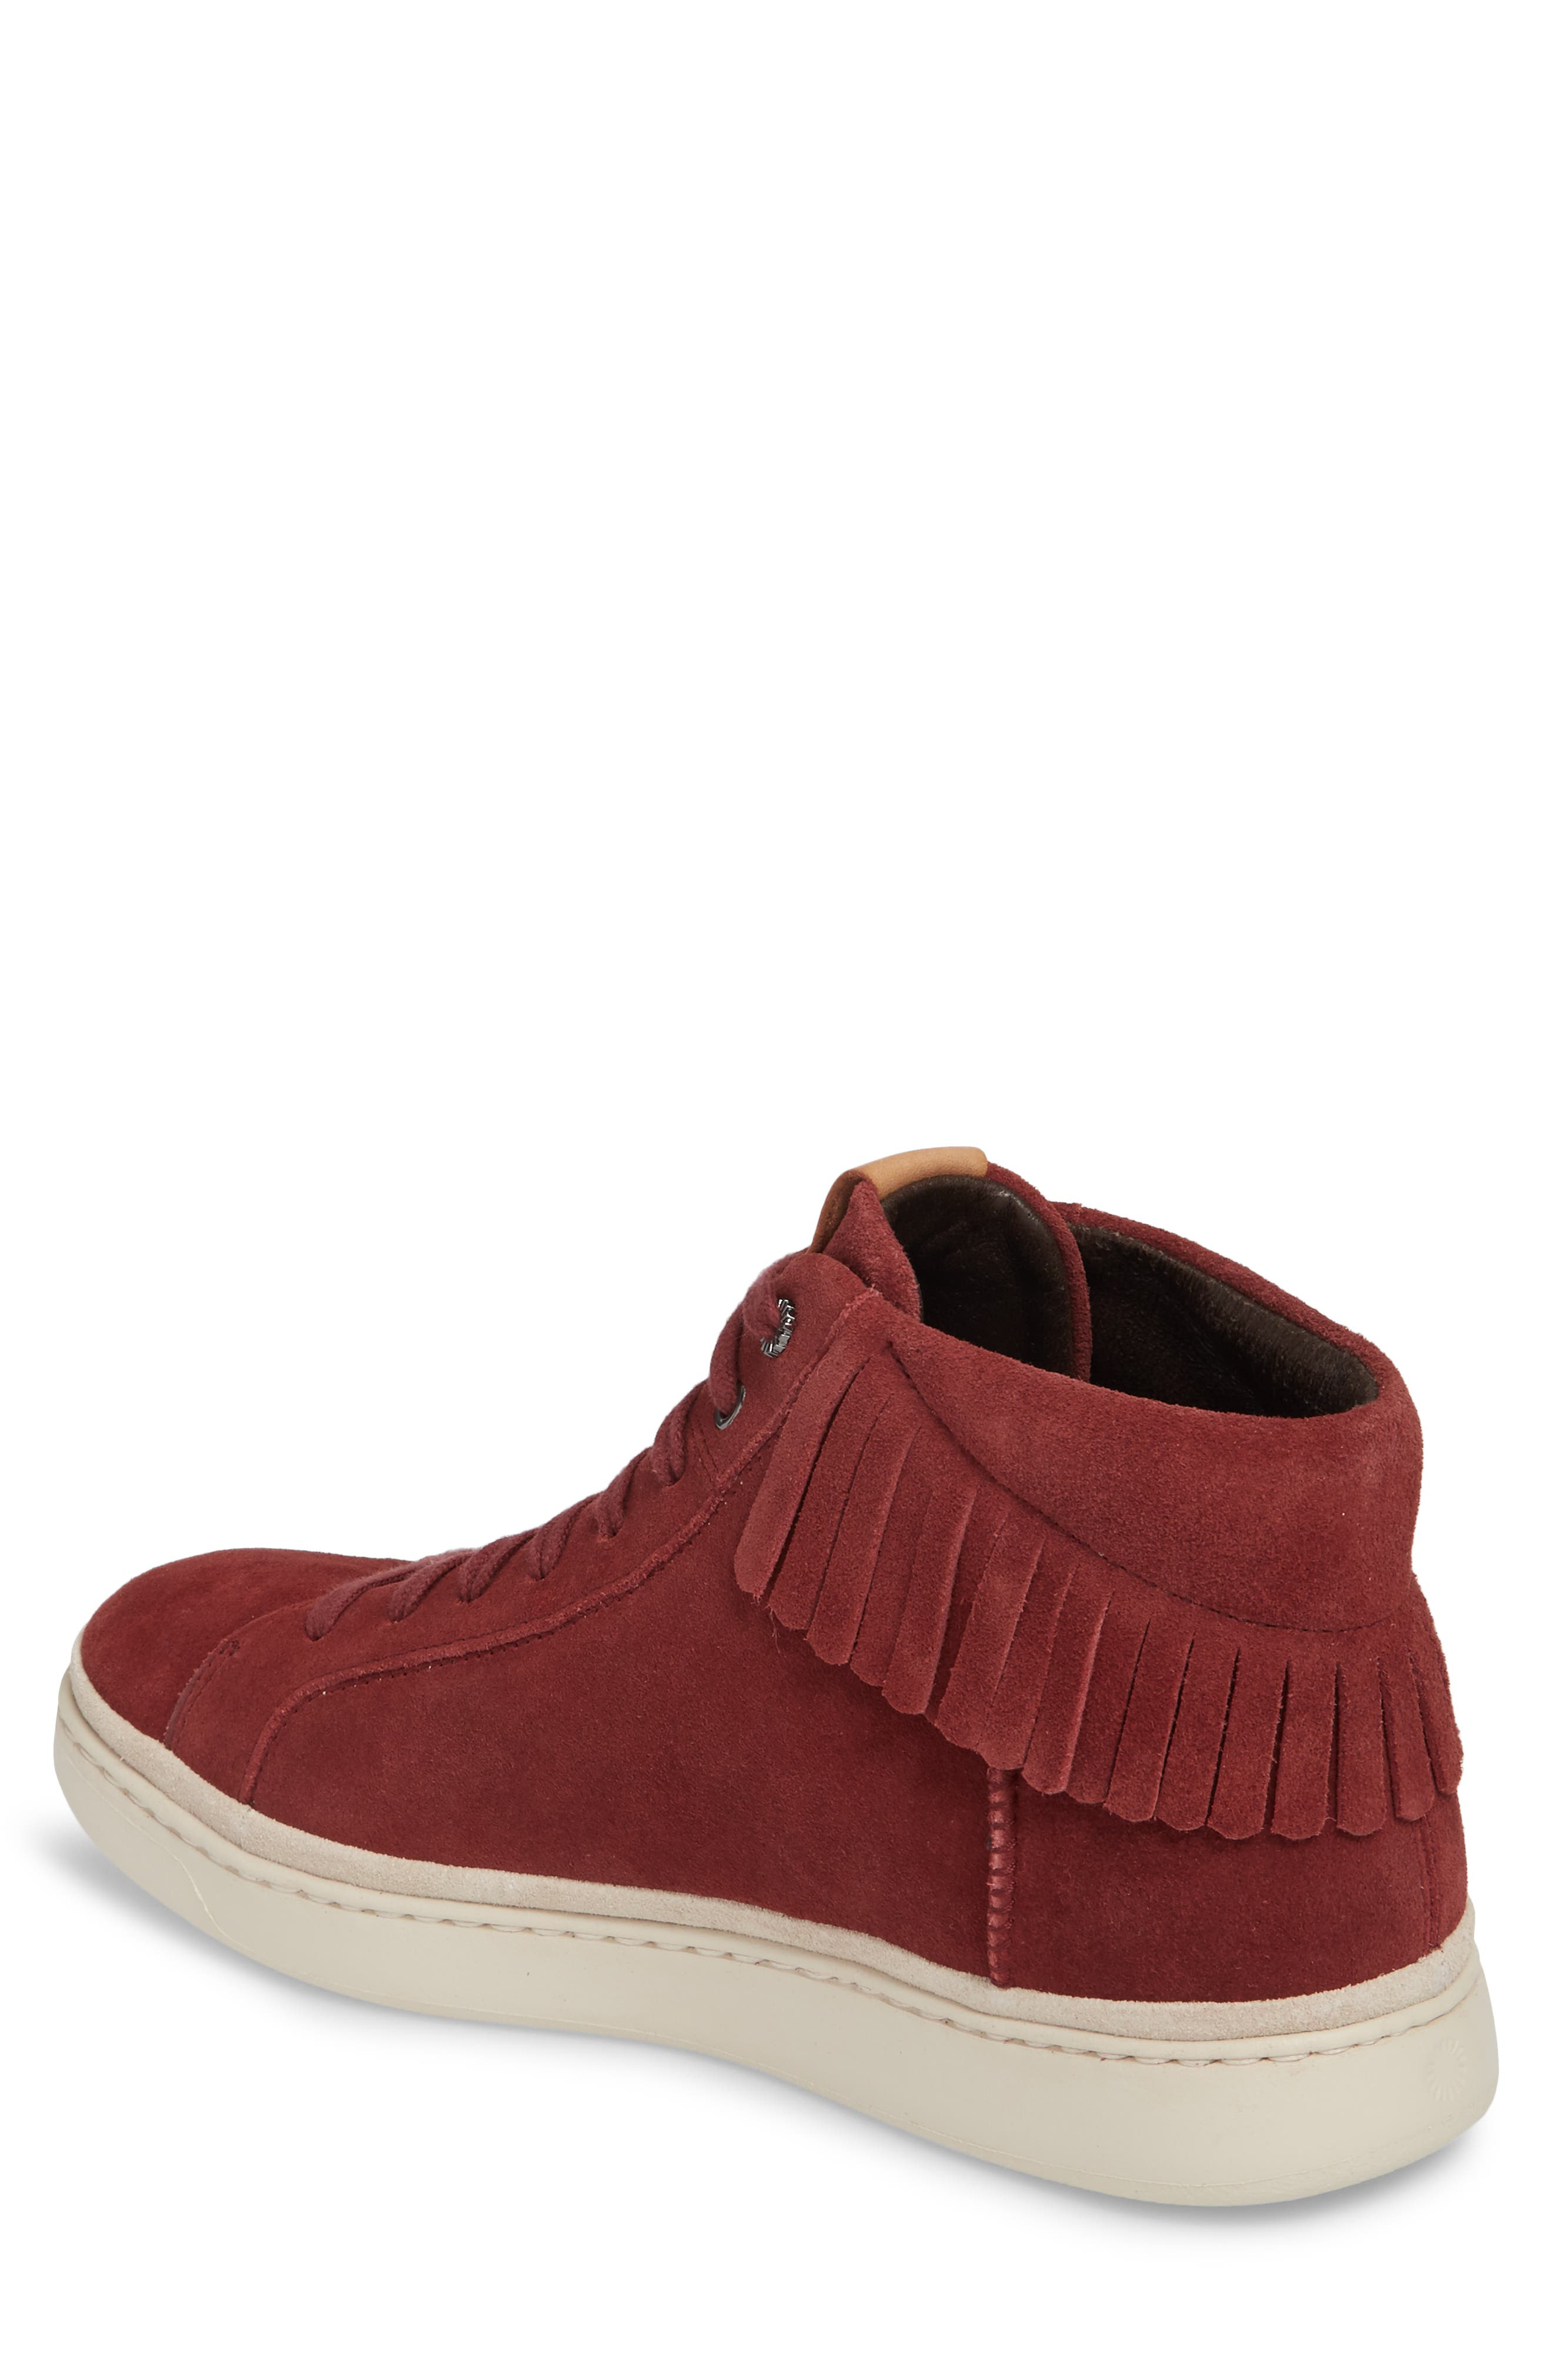 Brecken Fringe High-Top Sneaker,                             Alternate thumbnail 2, color,                             Pinot Noir Leather